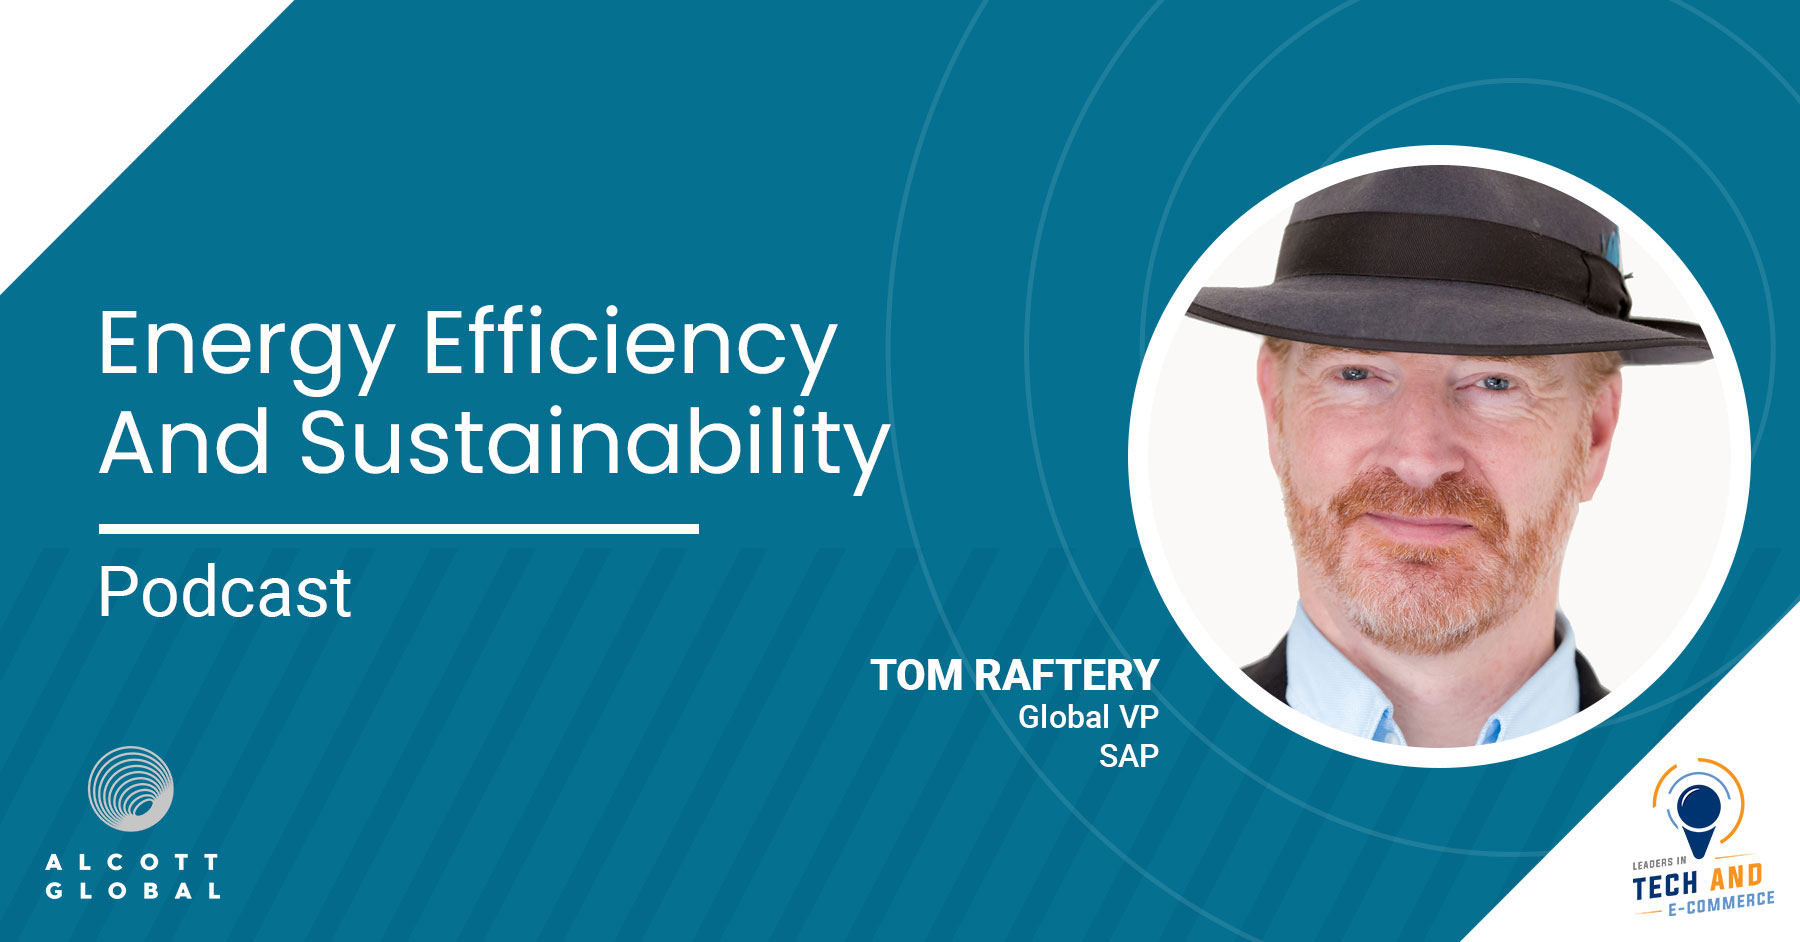 Energy Efficiency and Sustainability with Tom Raftery Global VP at SAP Featured Image